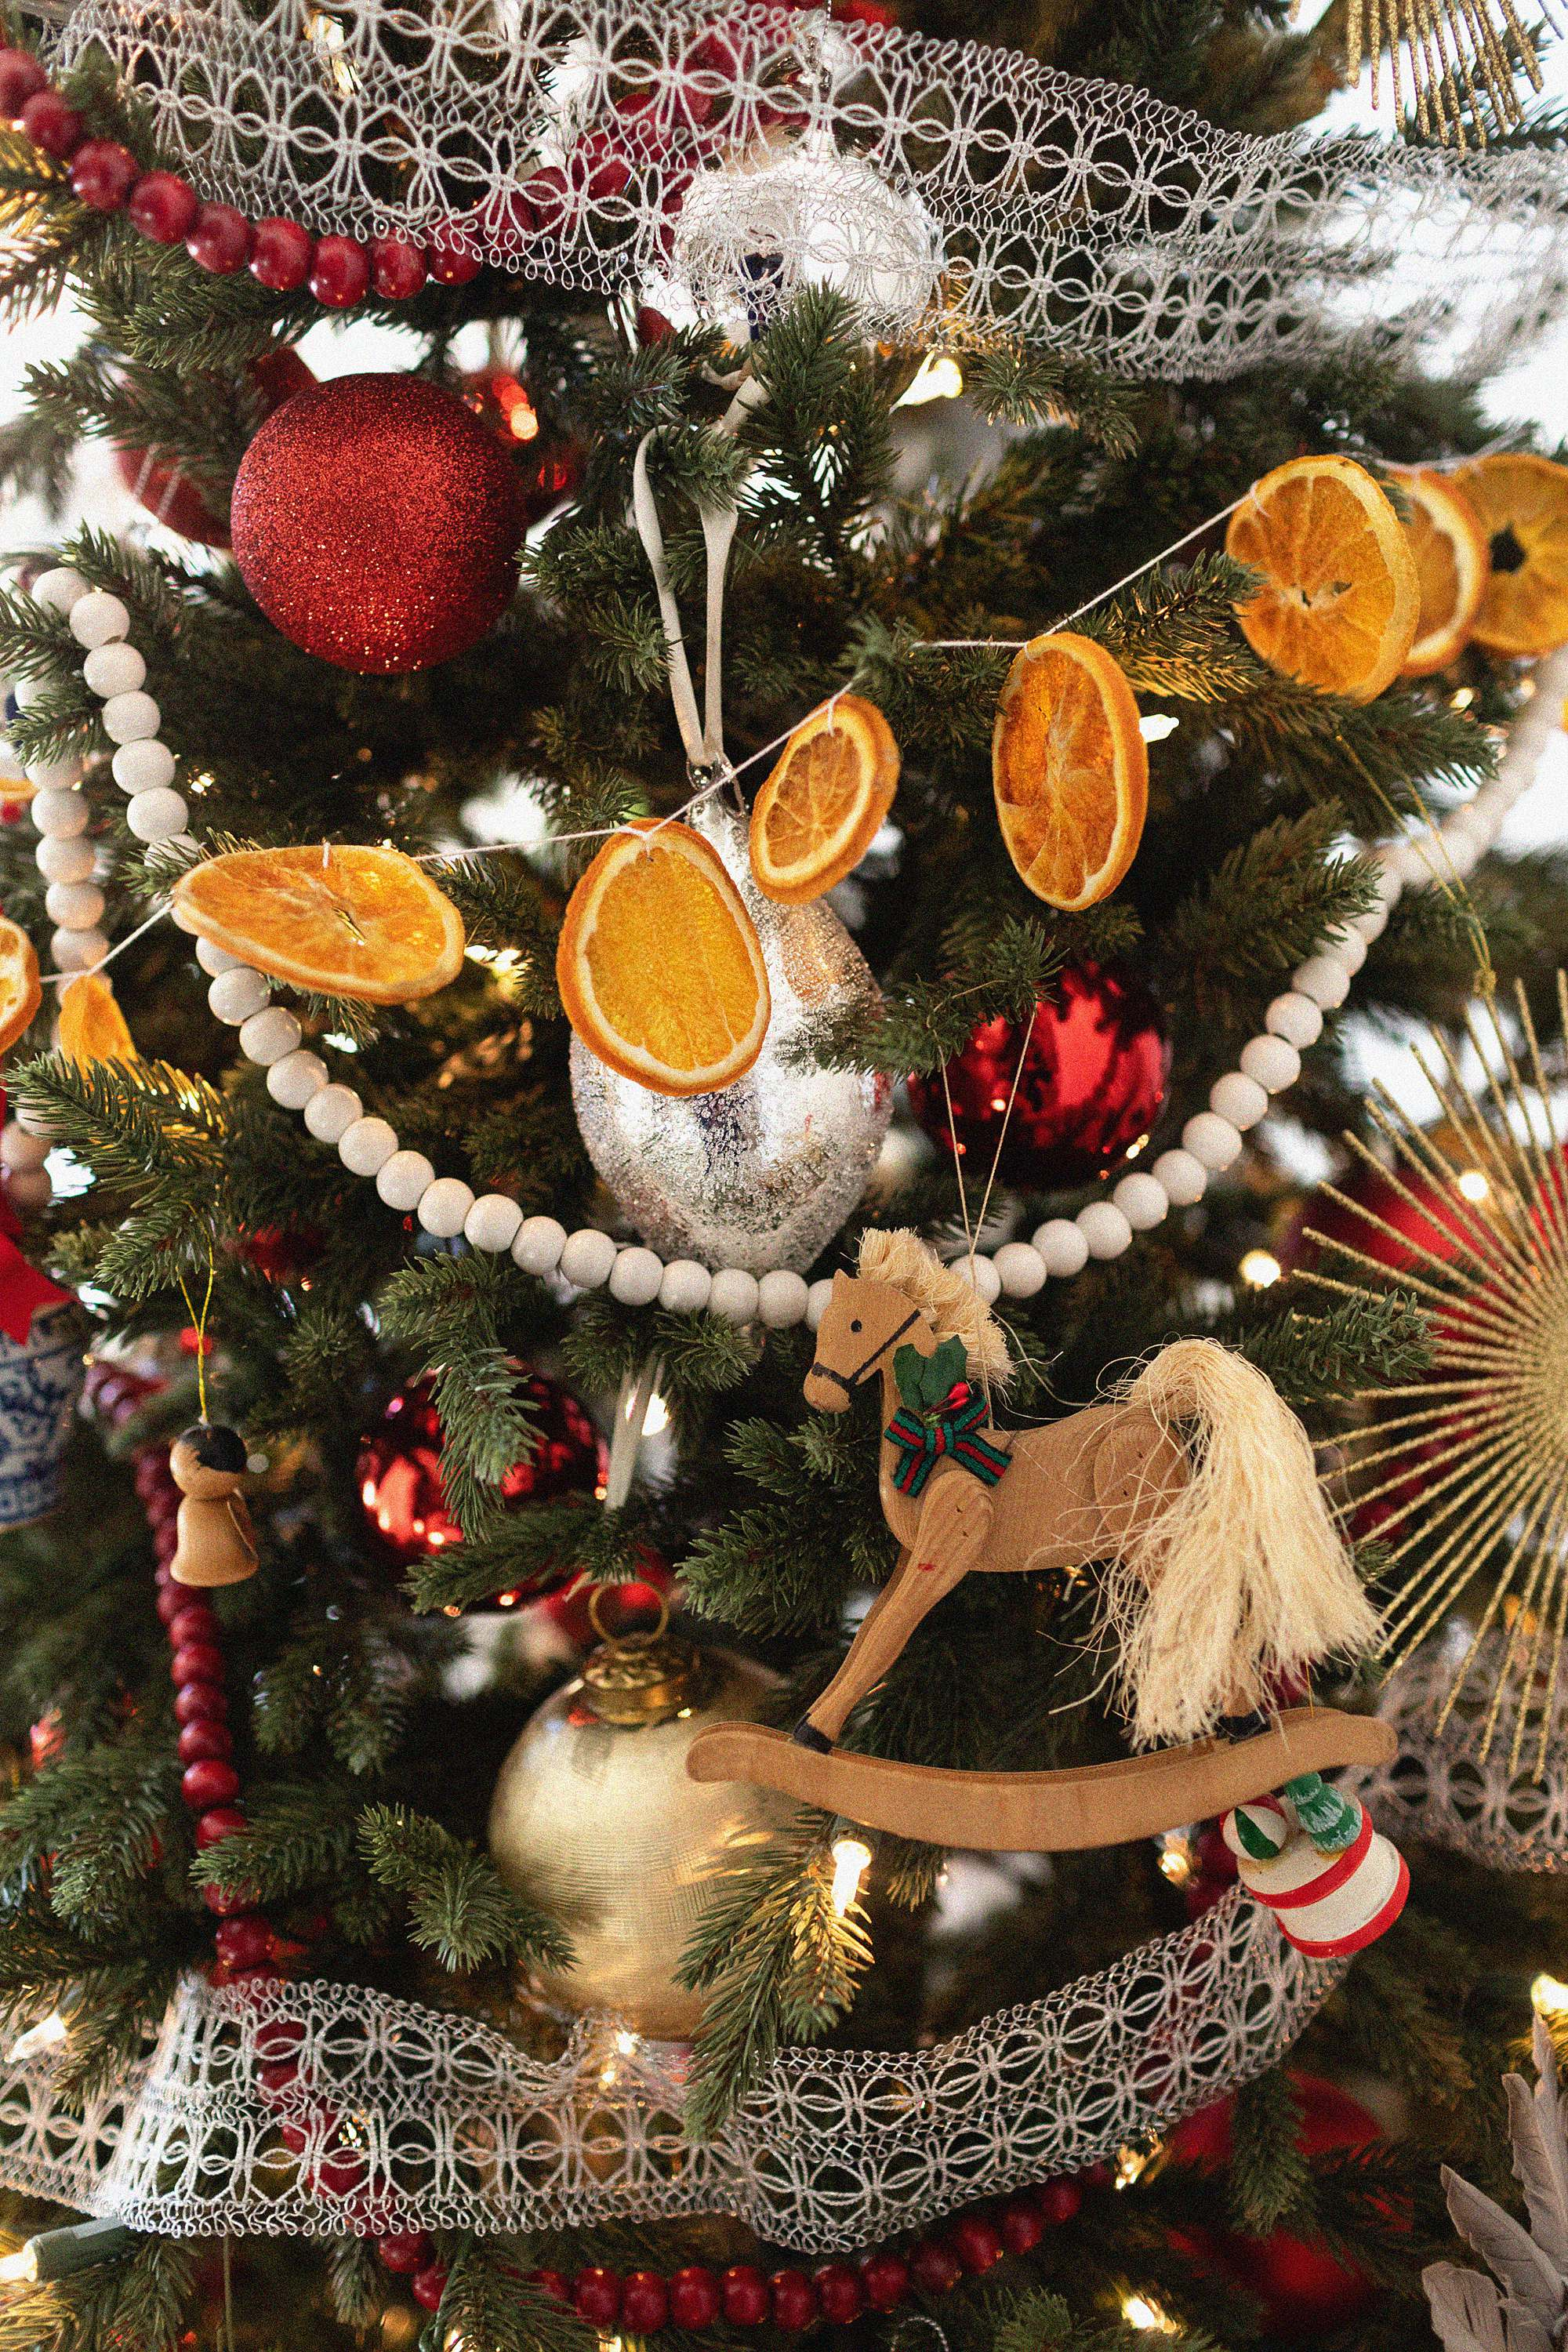 wooden horse ornament handmade with orange slices